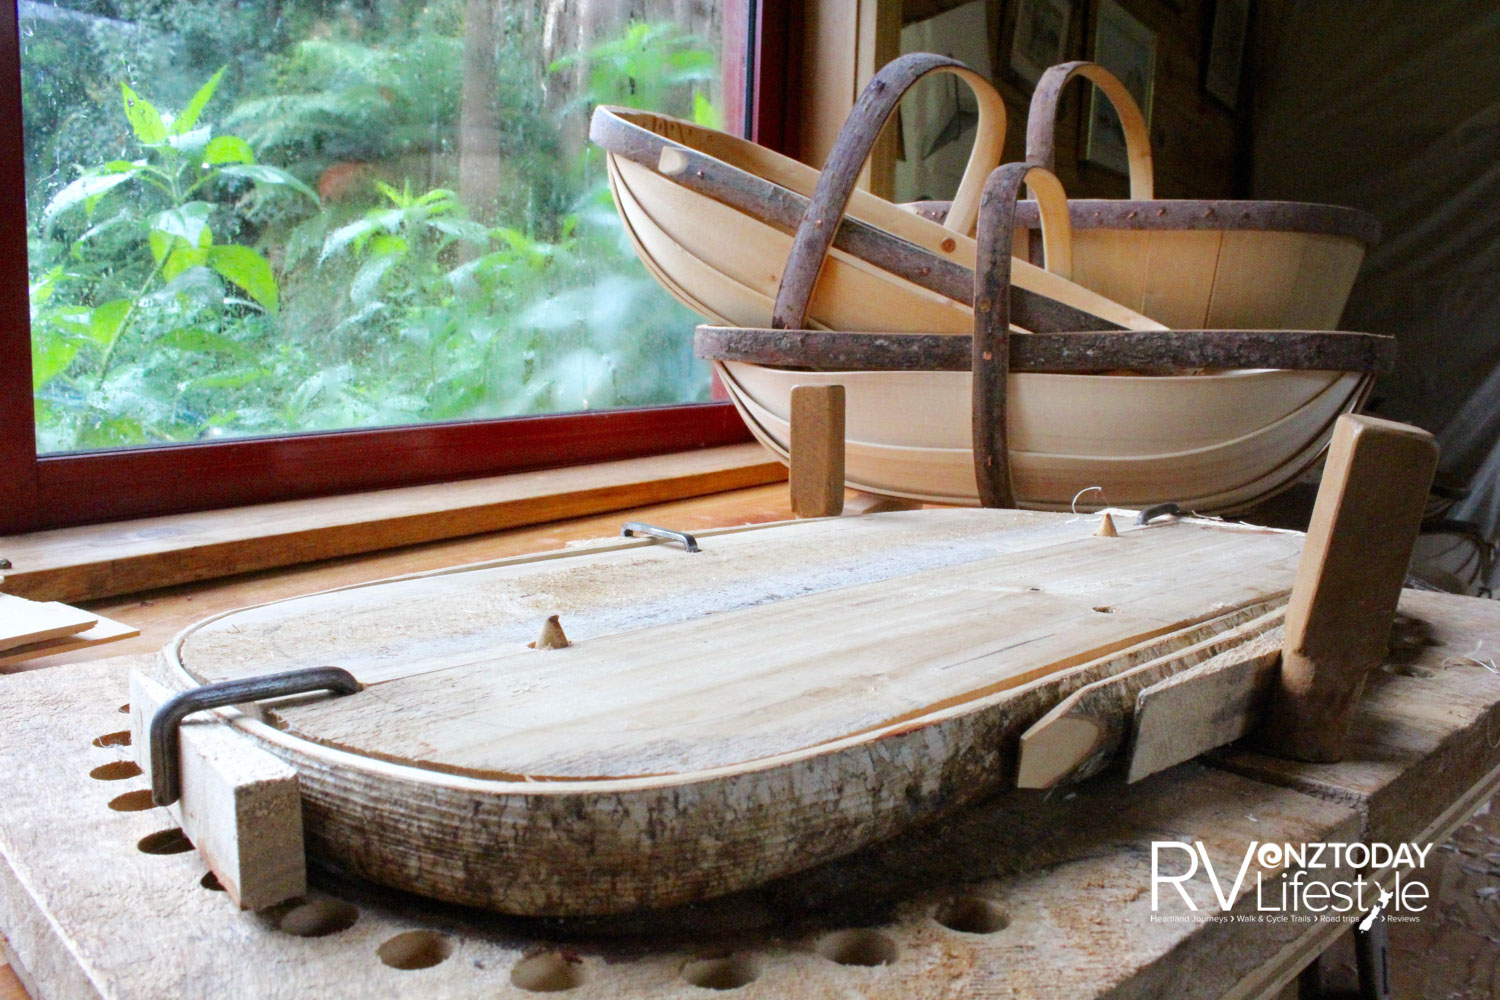 Tony has shaped this willow trug frame, now ready for drying (Photo: Lana Taylor)